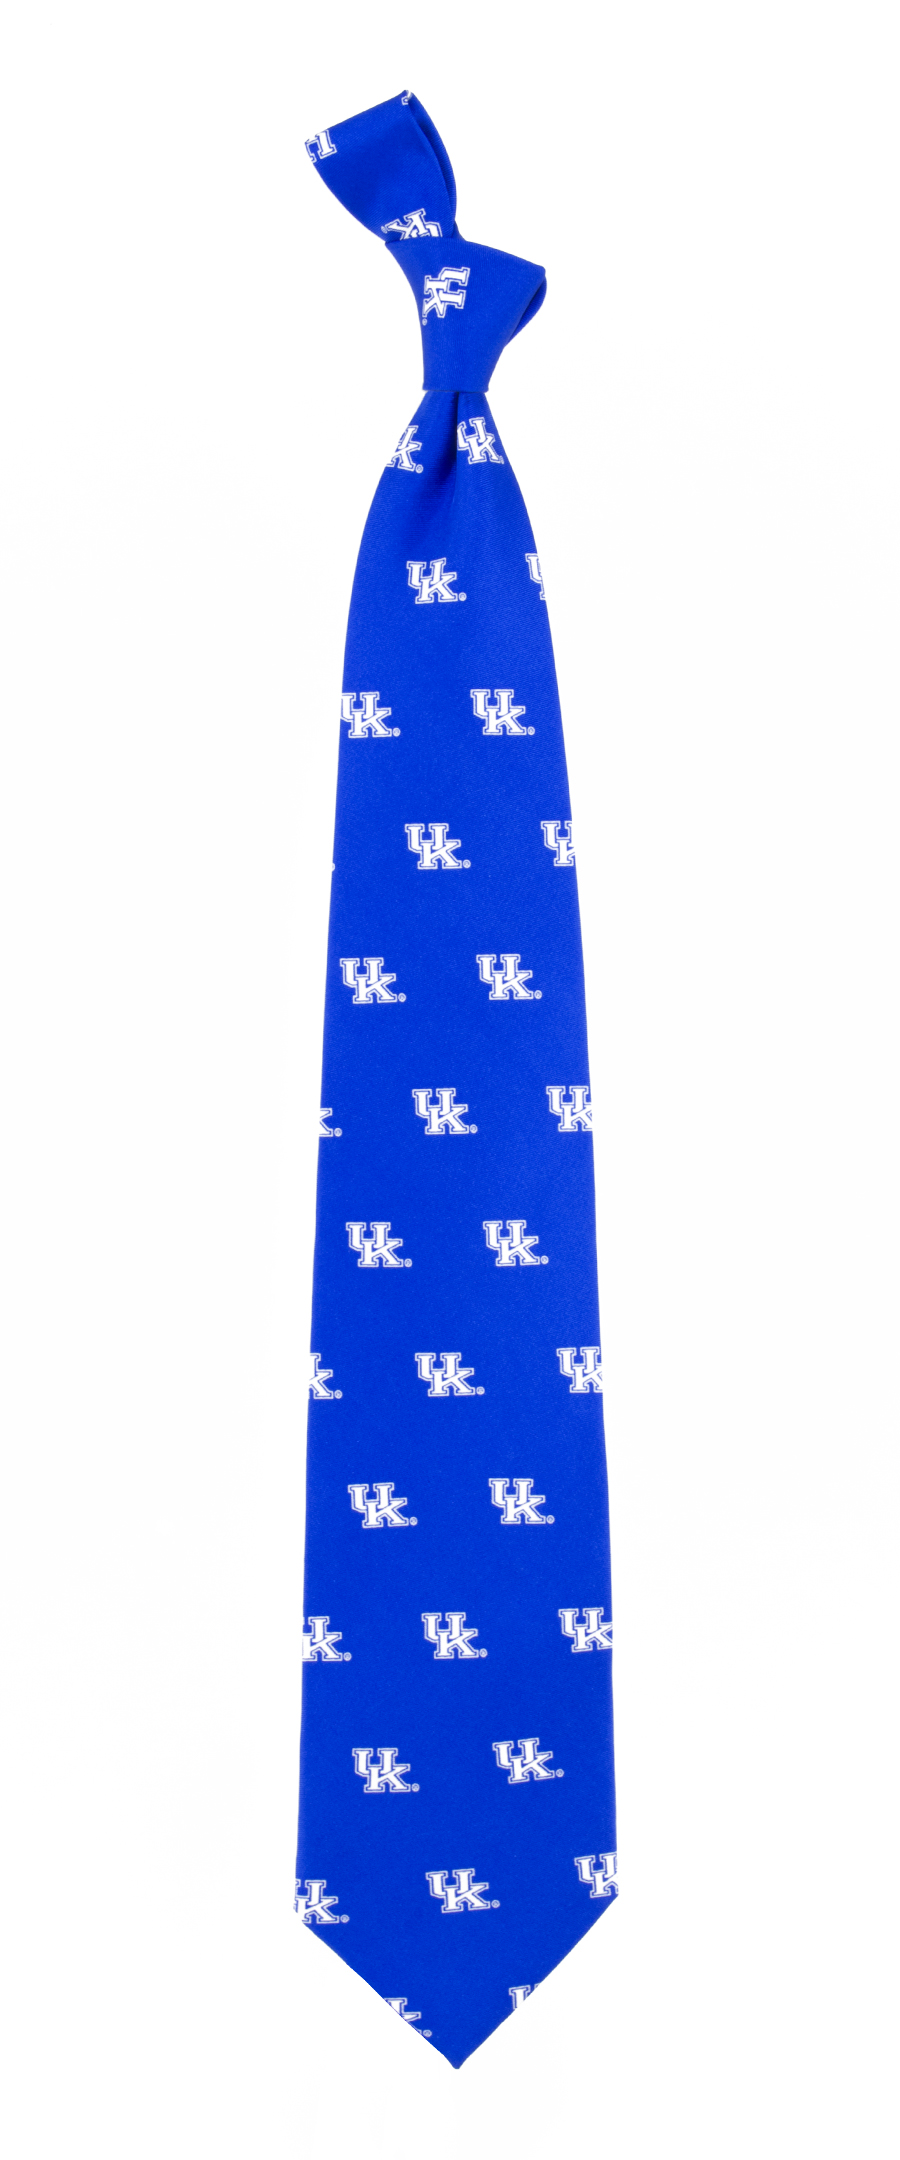 Kentucky Wildcats tie